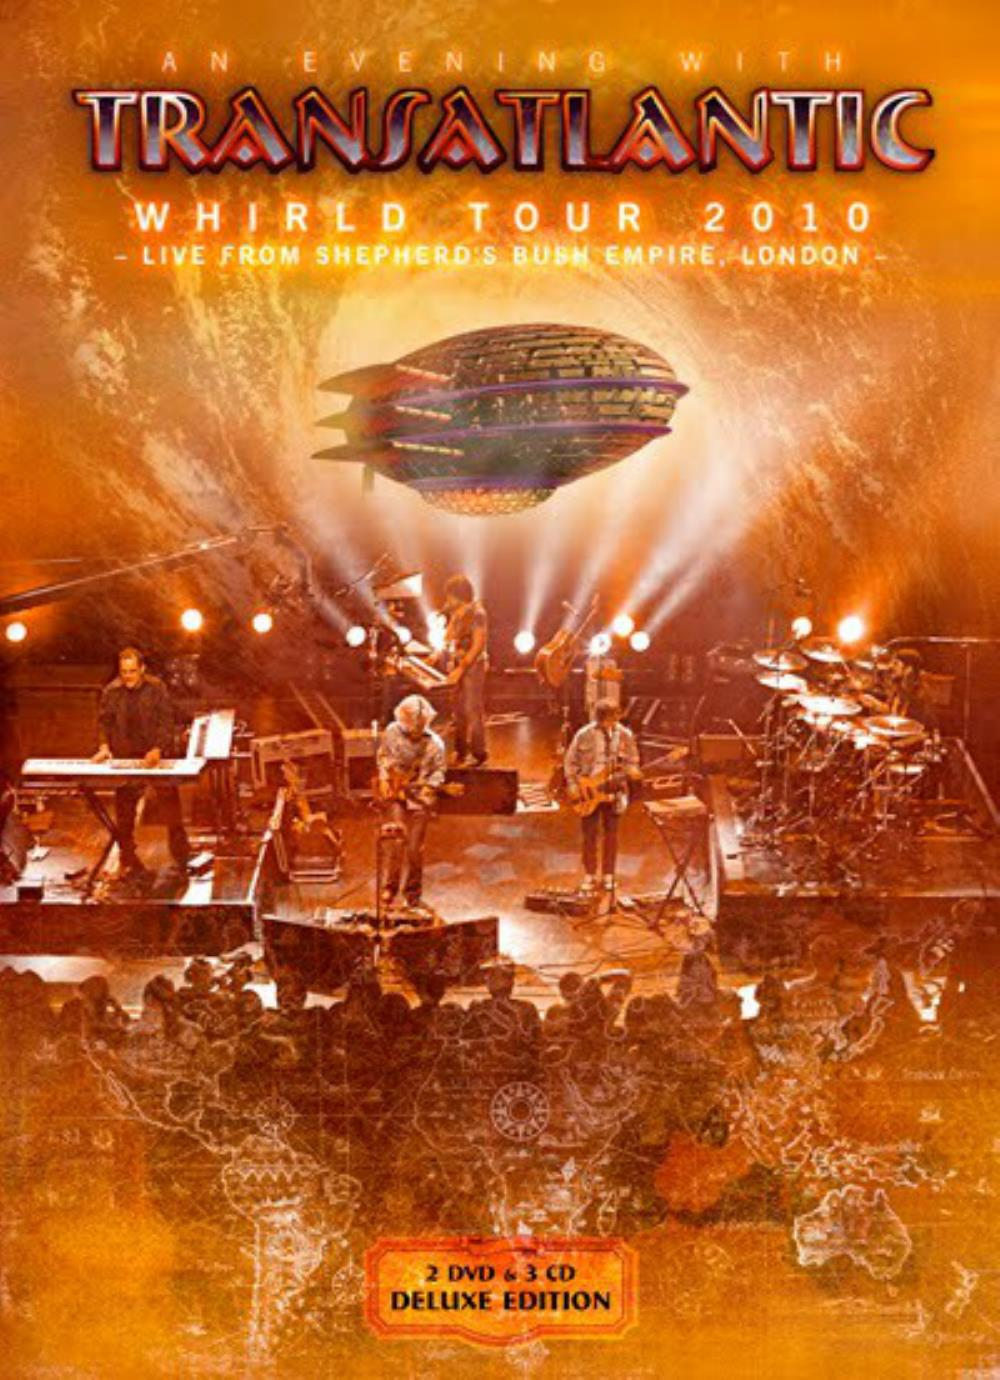 Transatlantic - Whirld Tour 2010 - Live From Shepherd's Bush Empire, London CD (album) cover